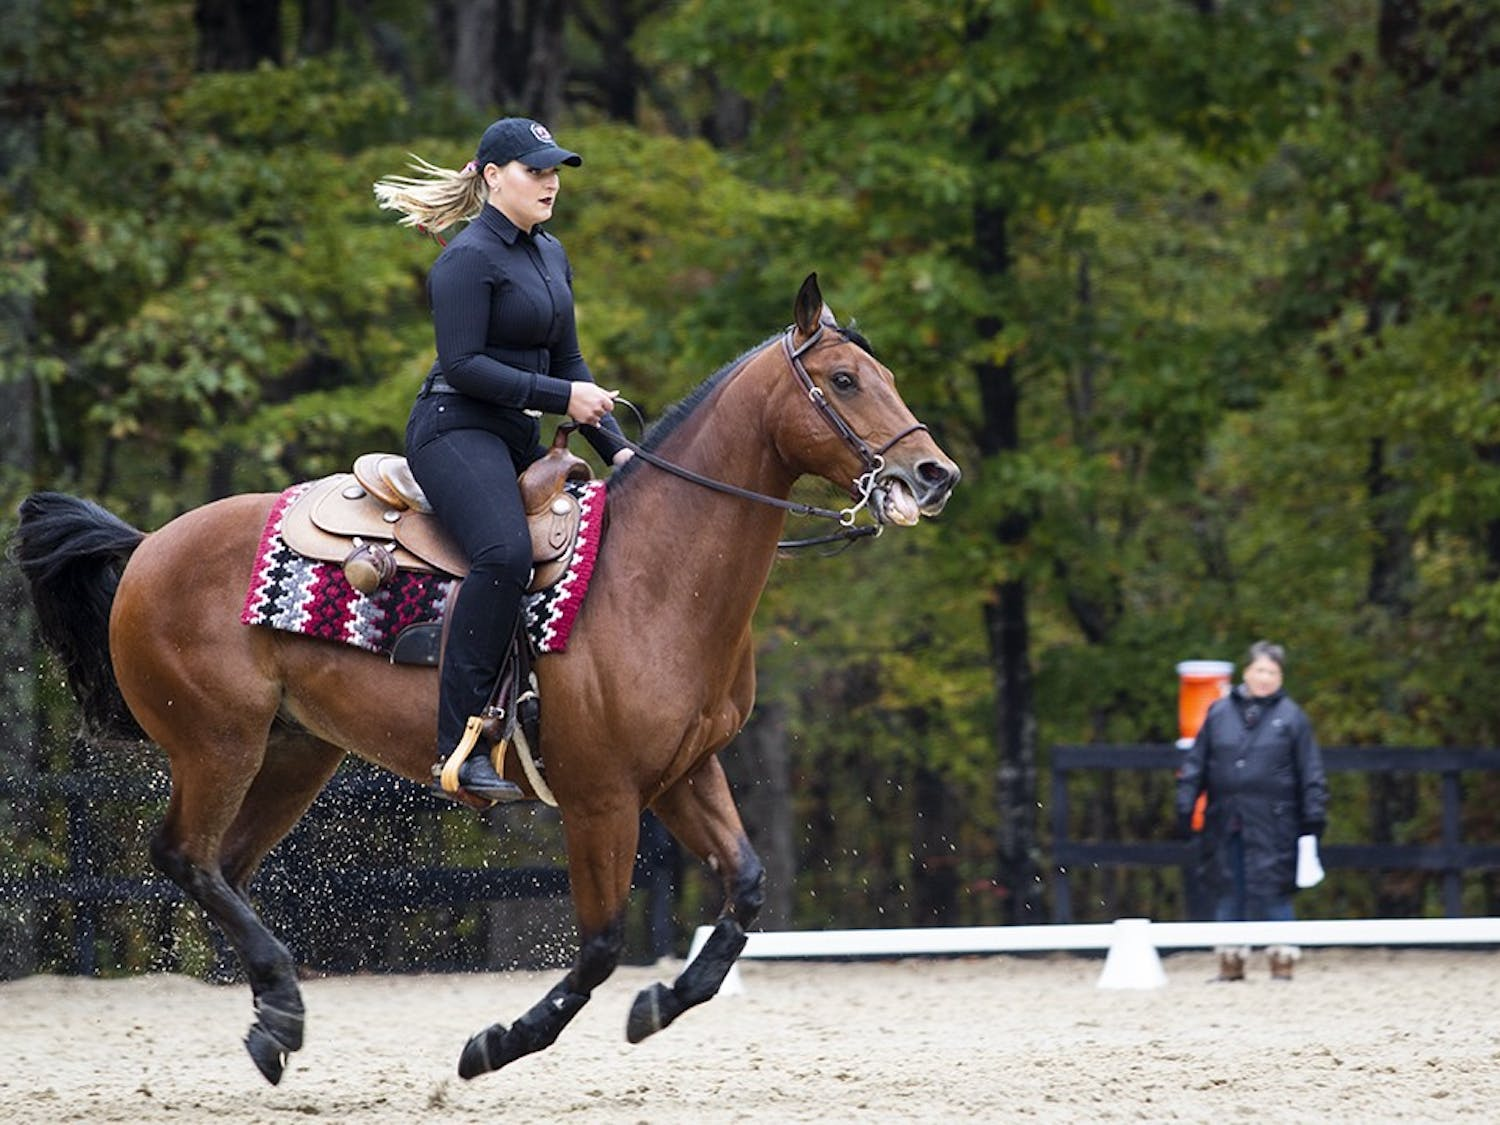 South Carolina sophomore Sloane Vogt riding on Magnum riding during their reigning event. Vogt scored a 67 on her ride.